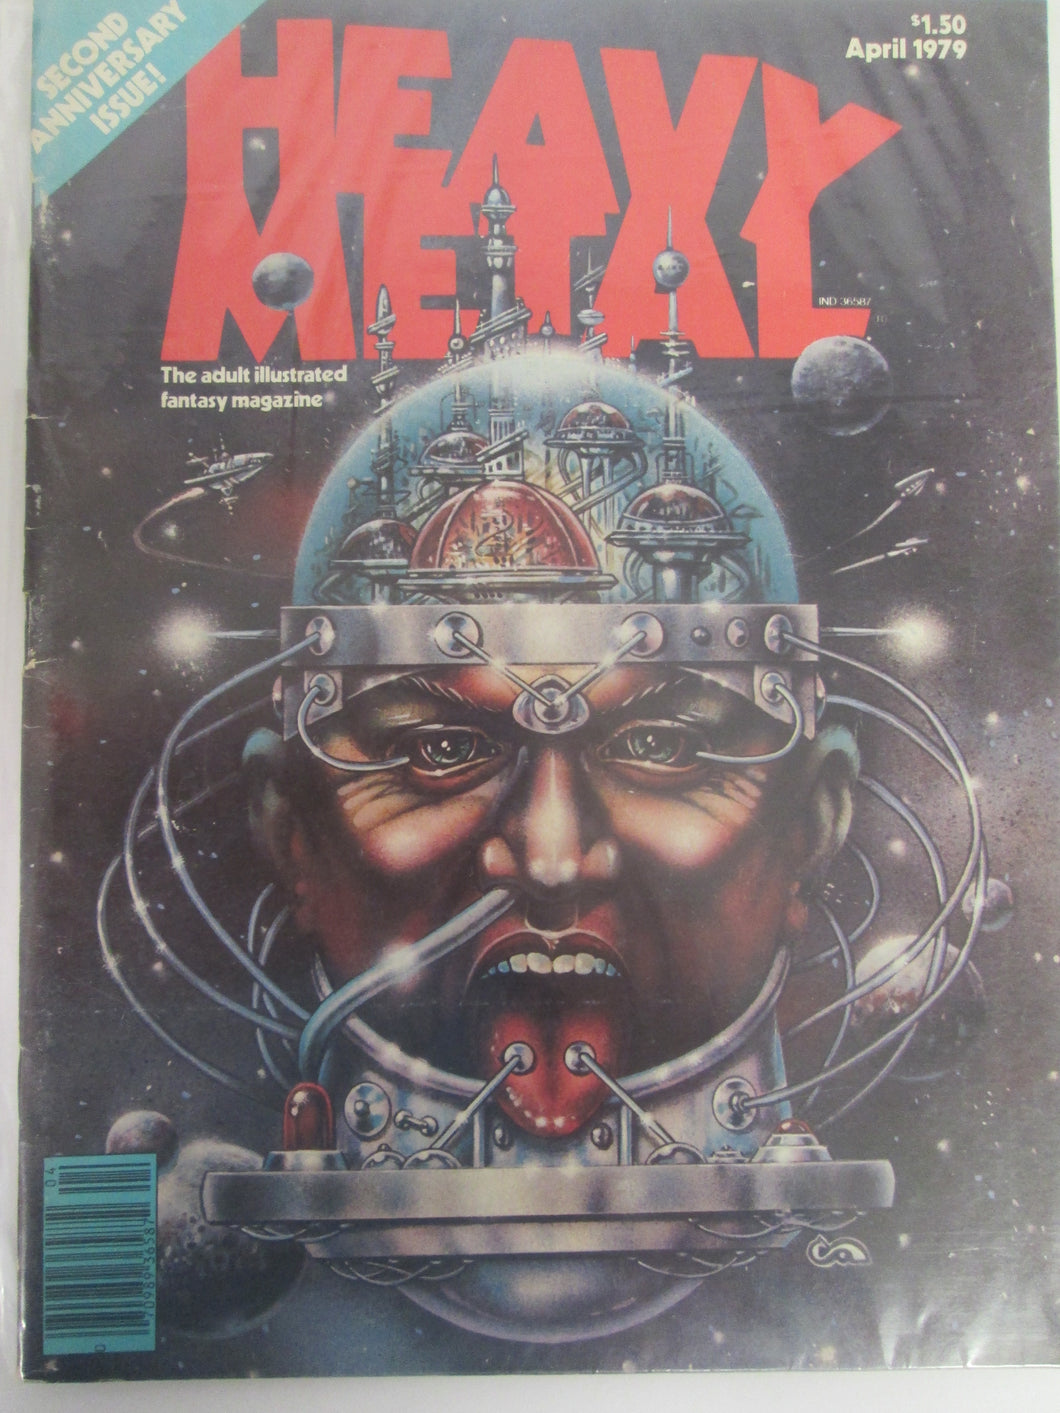 Heavy Metal Magazine April 1979